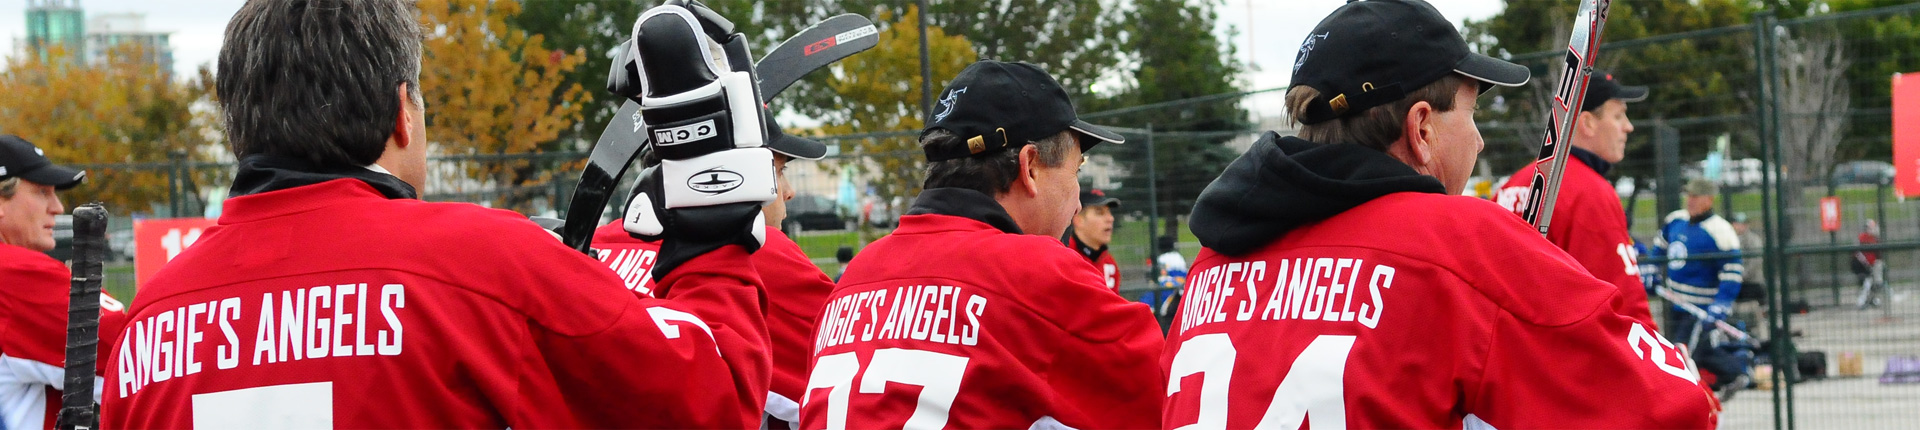 Road Hockey to Conquer Cancer - 2017 - The Princess Margaret Cancer Foundation